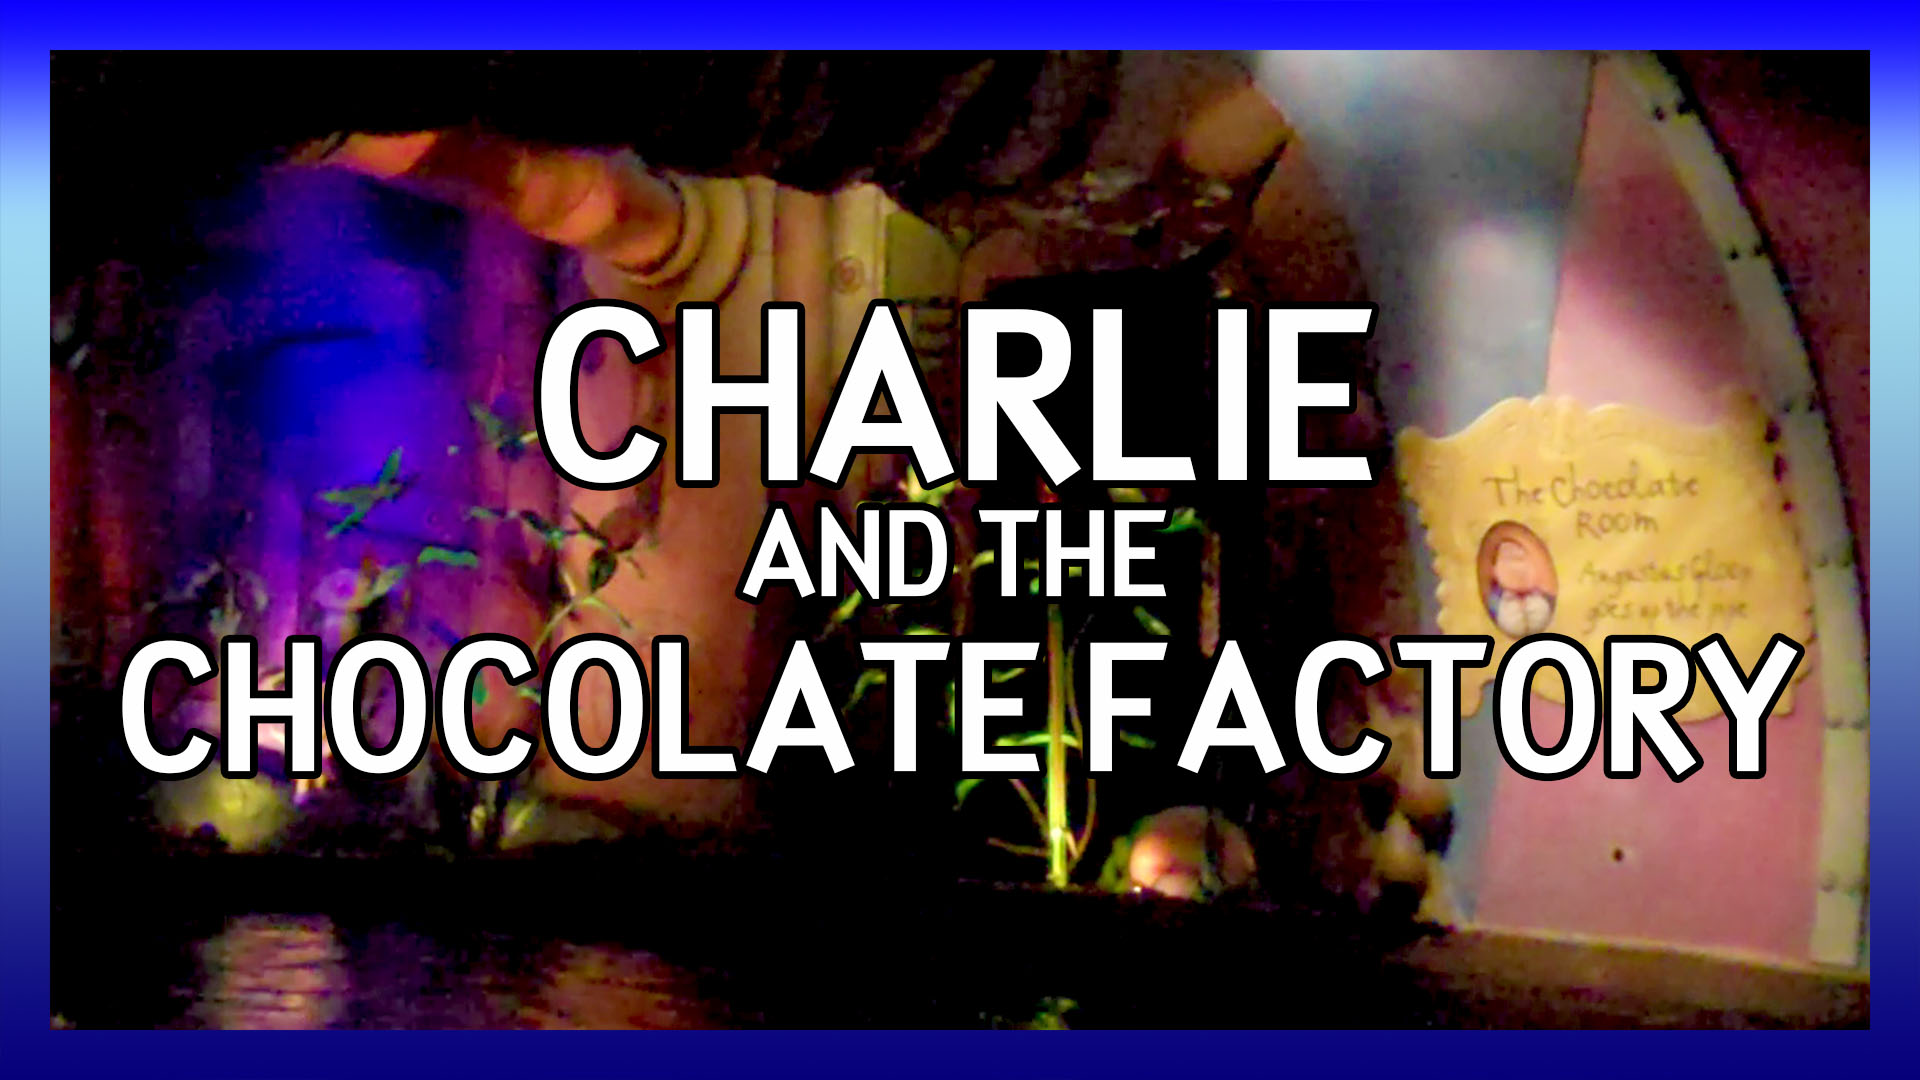 Alton Towers Charlie and the Chocolate Factory ride through 2010 video